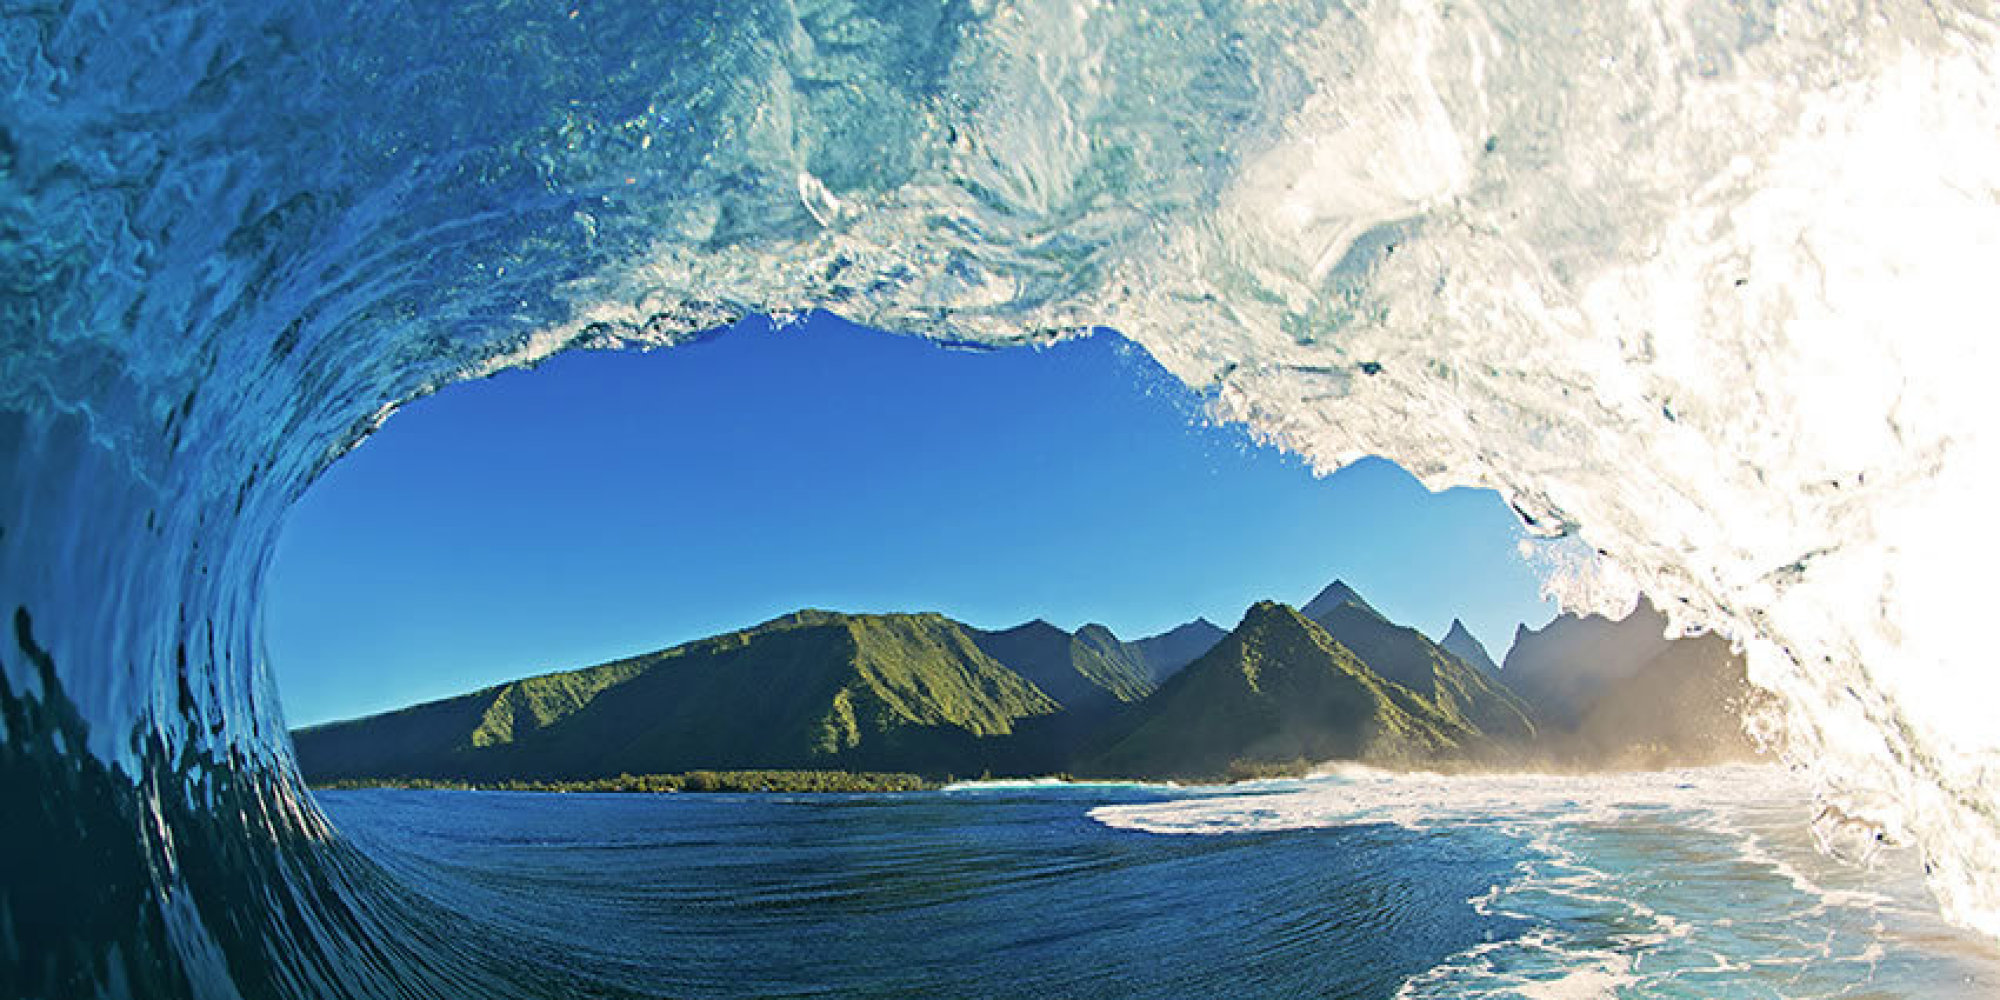 Displaying 19 Images For   Ocean Wave Photography Clark Little 2000x1000